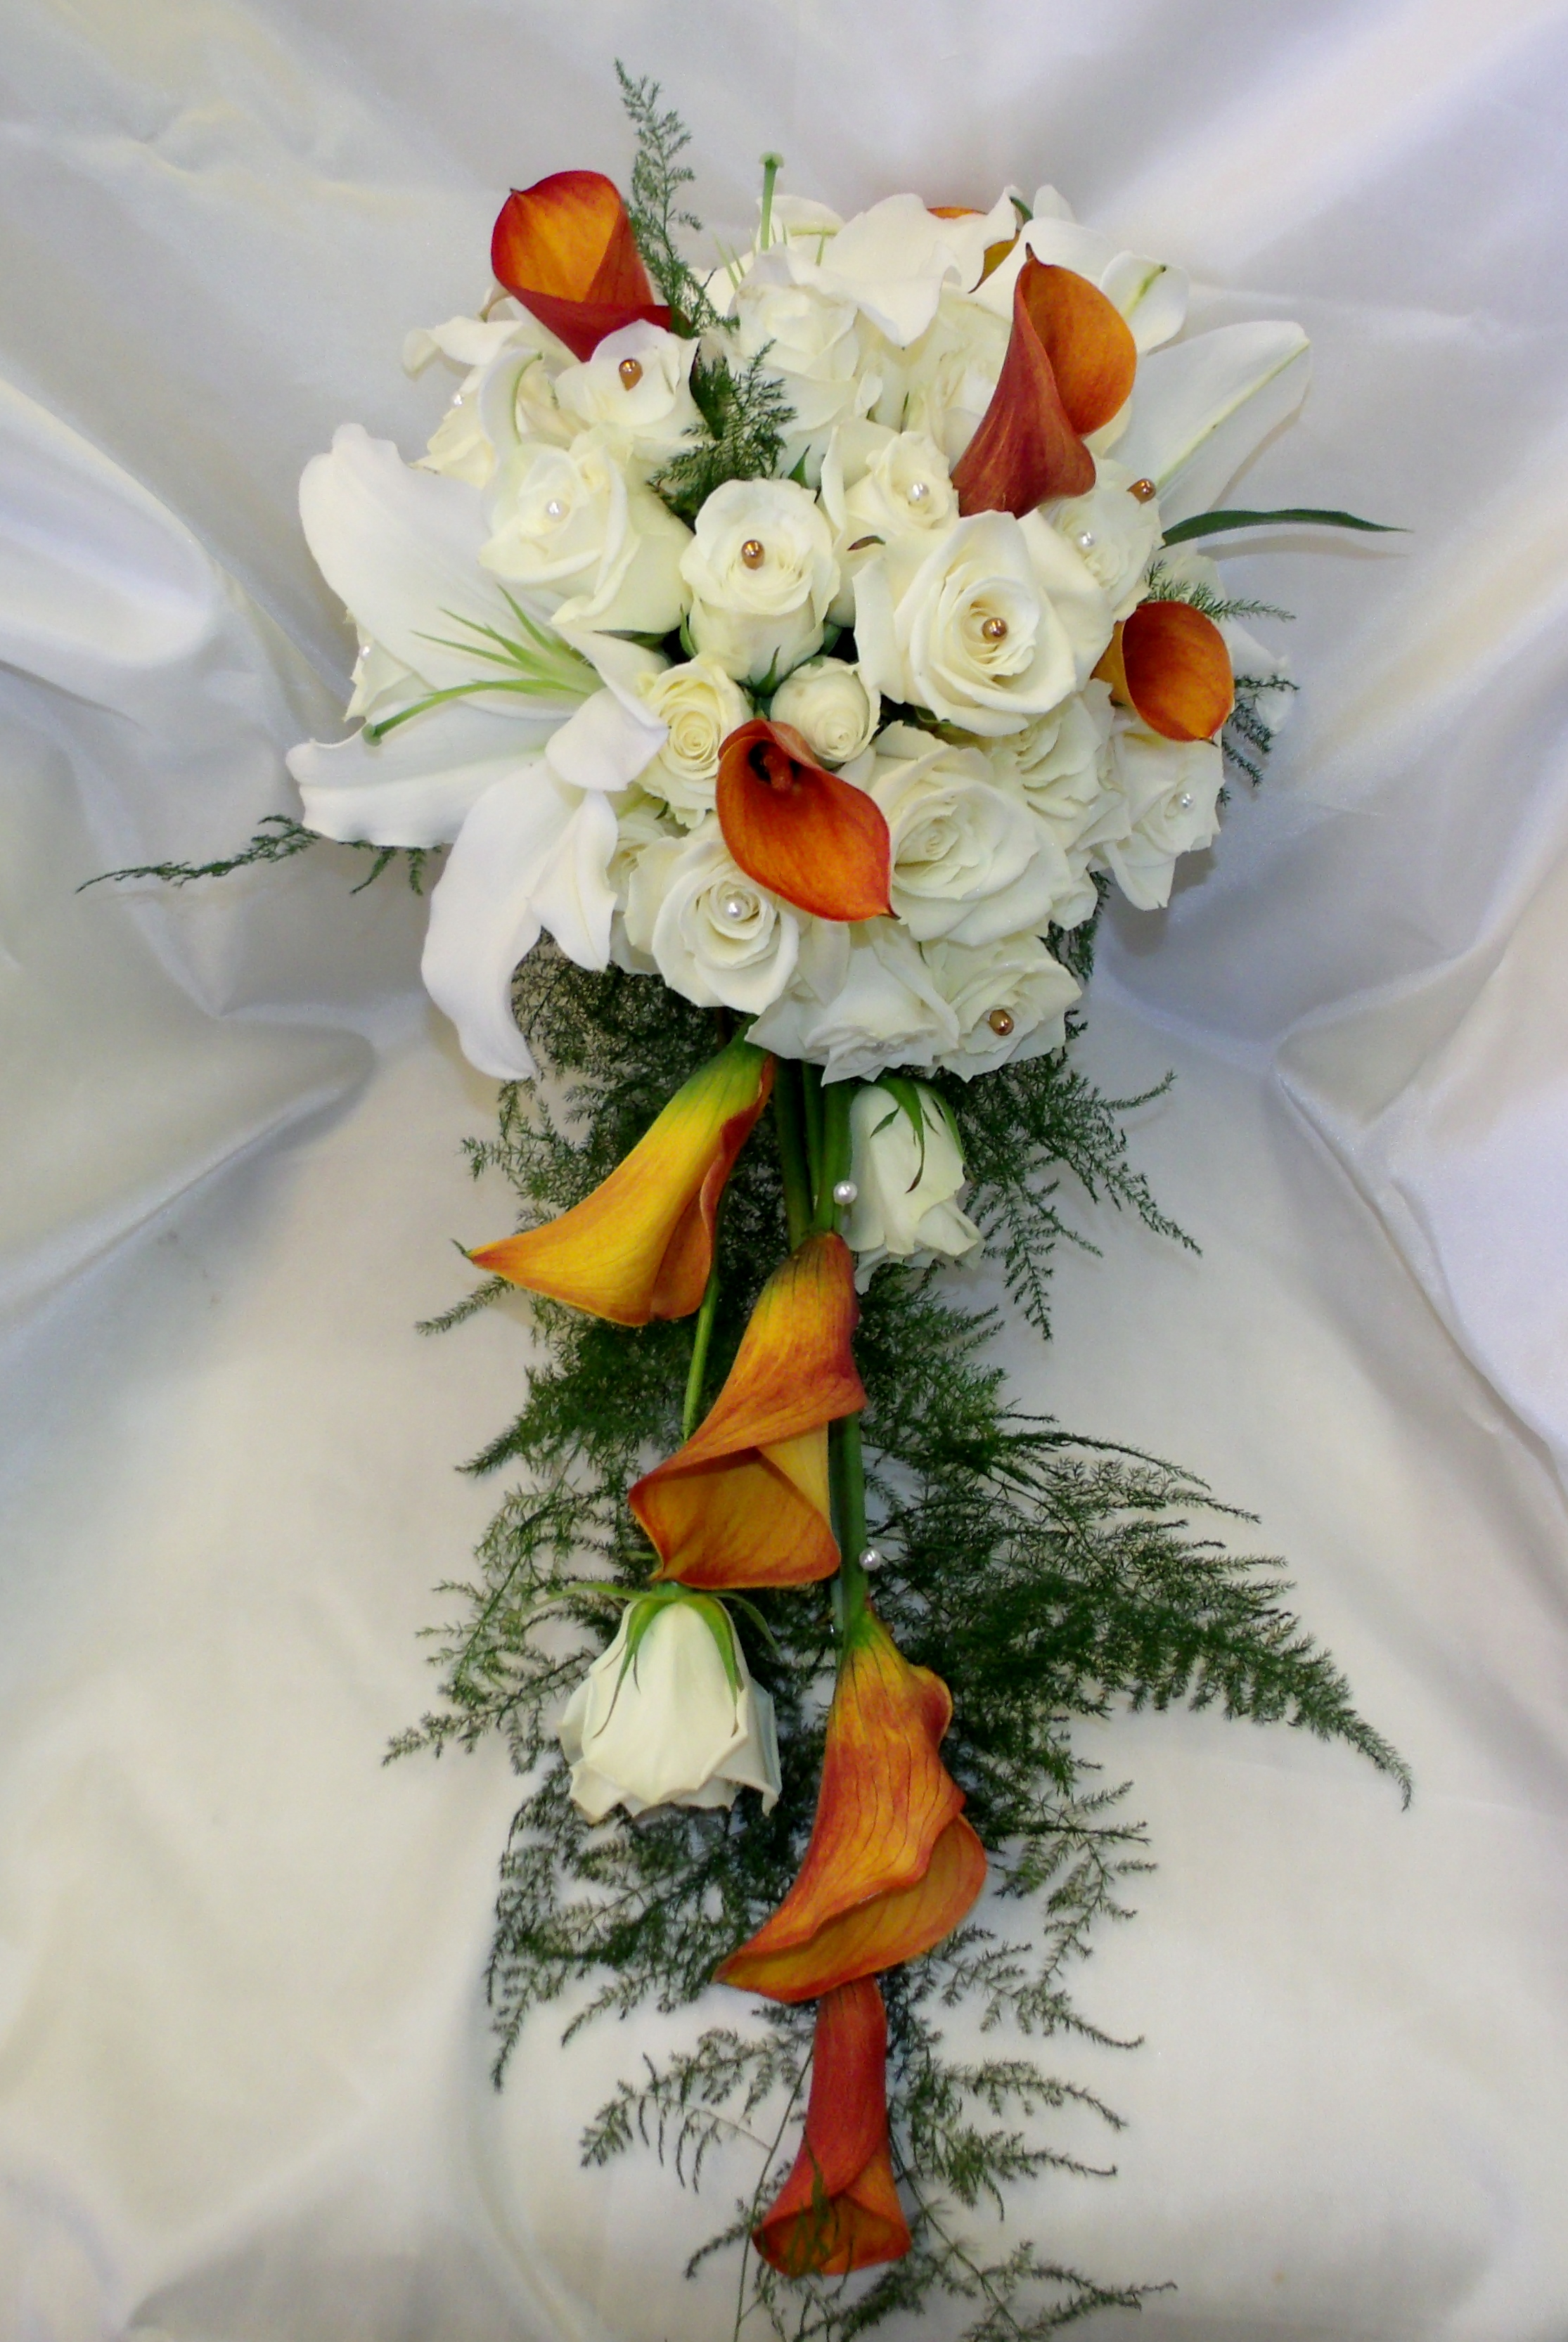 Rose, Calla lily & lily bouquet